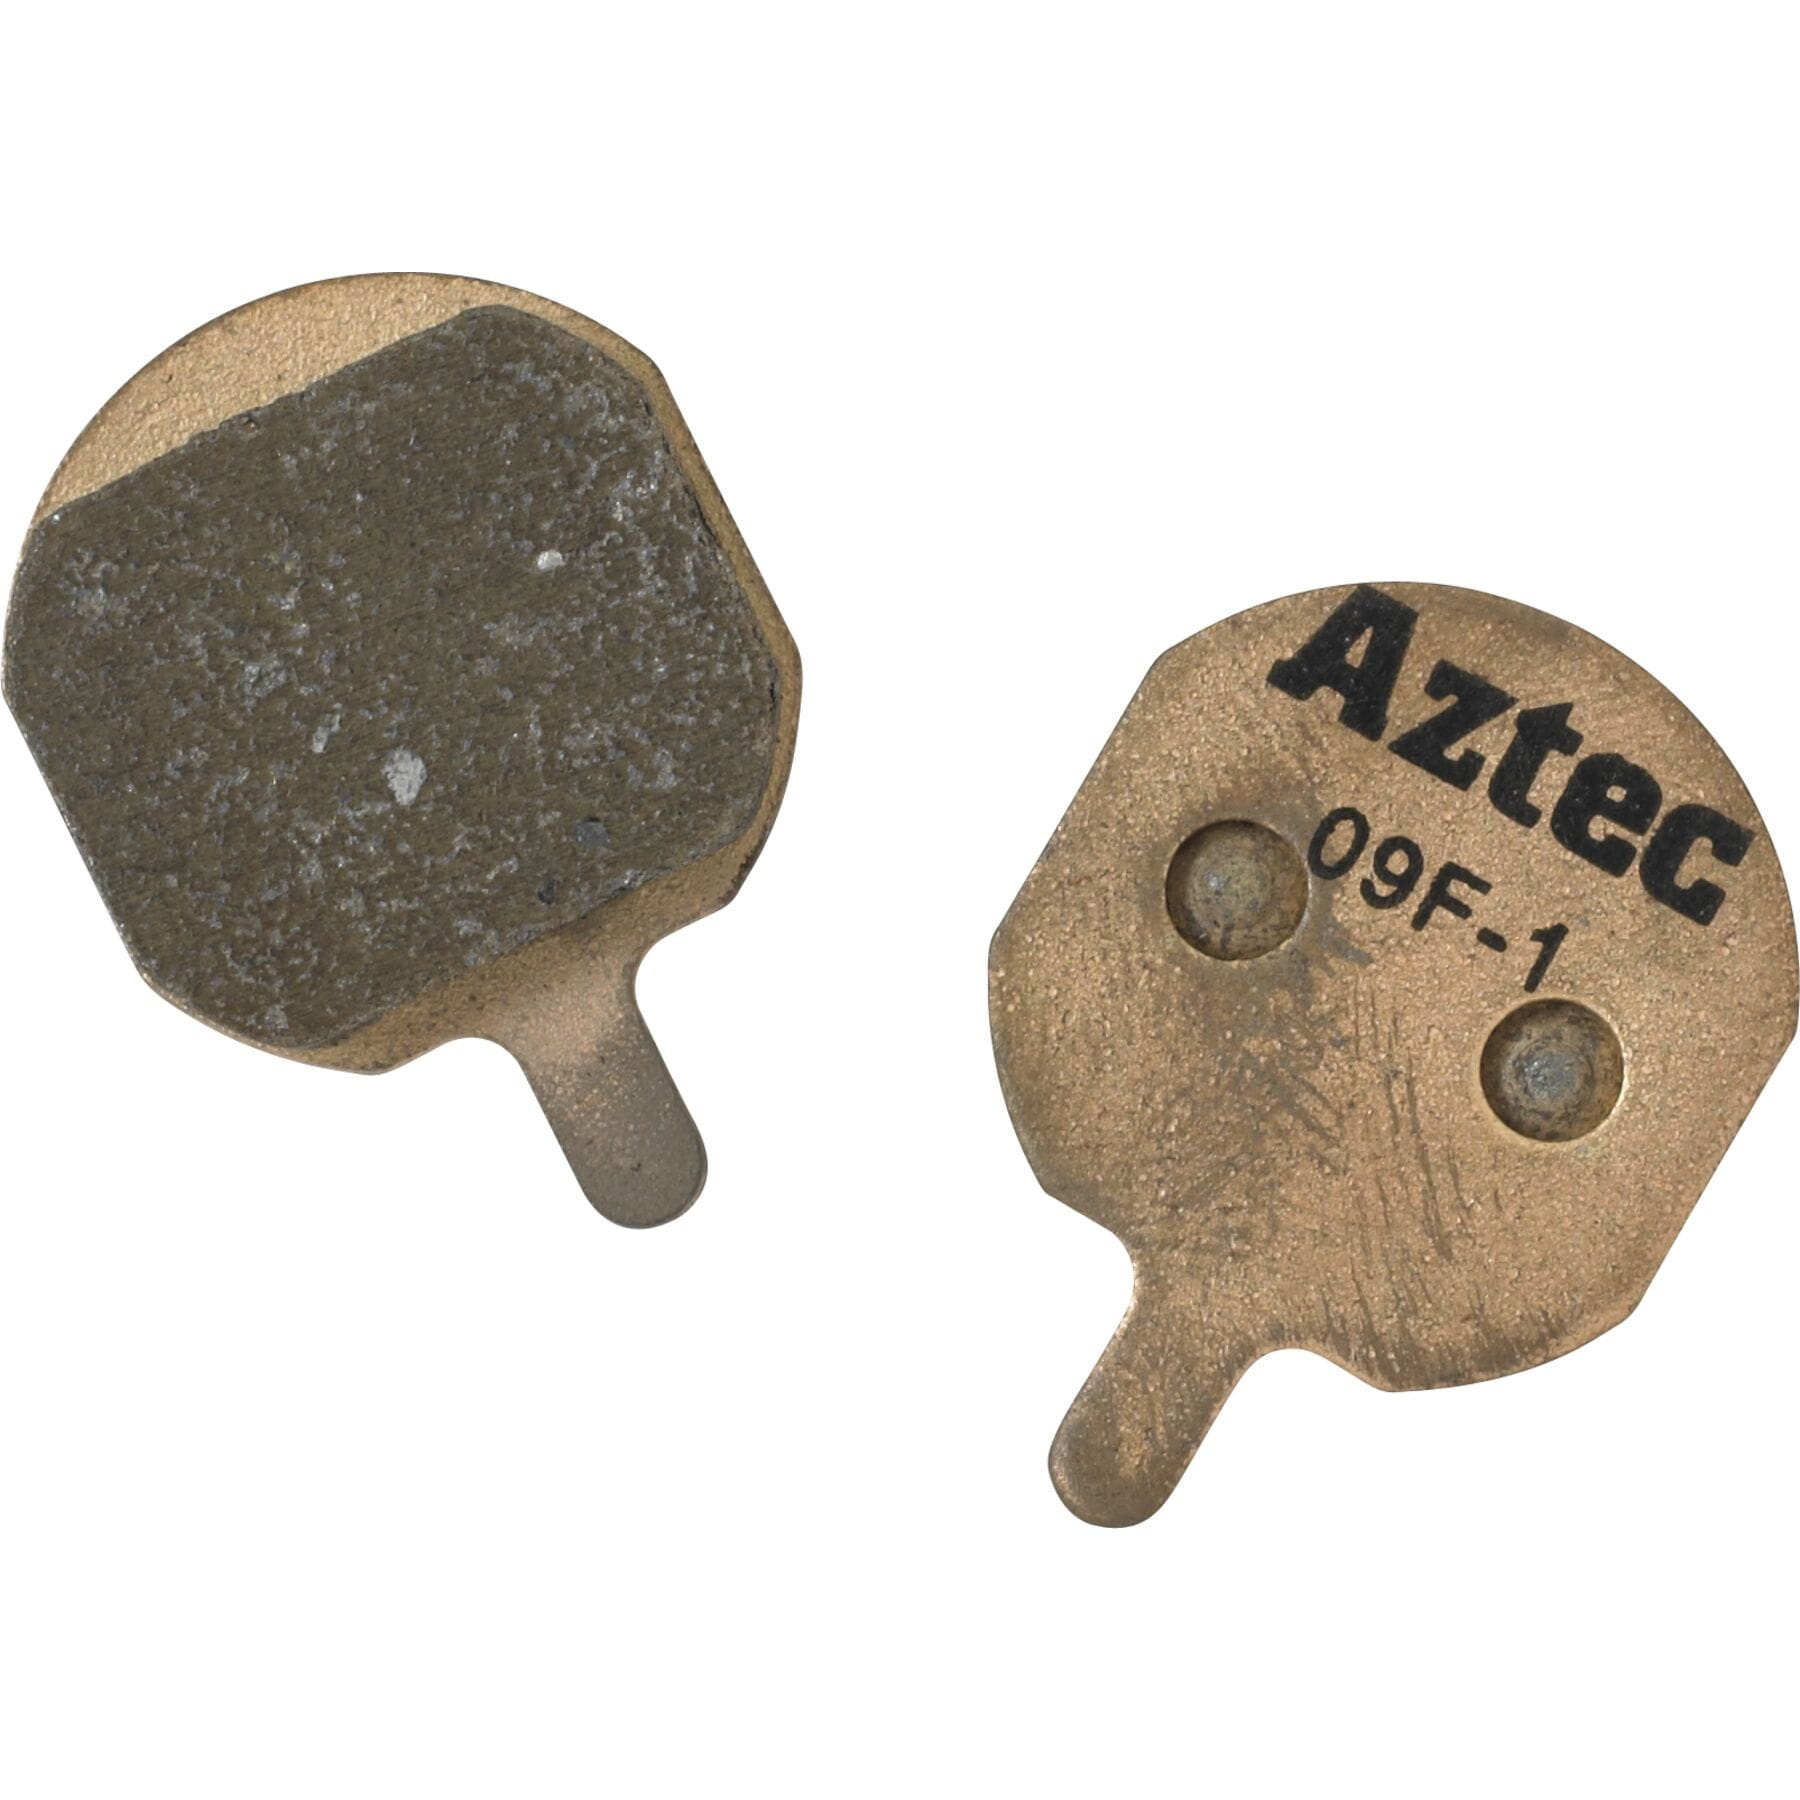 Aztec Sintered disc brake pads for Hayes So1e callipers